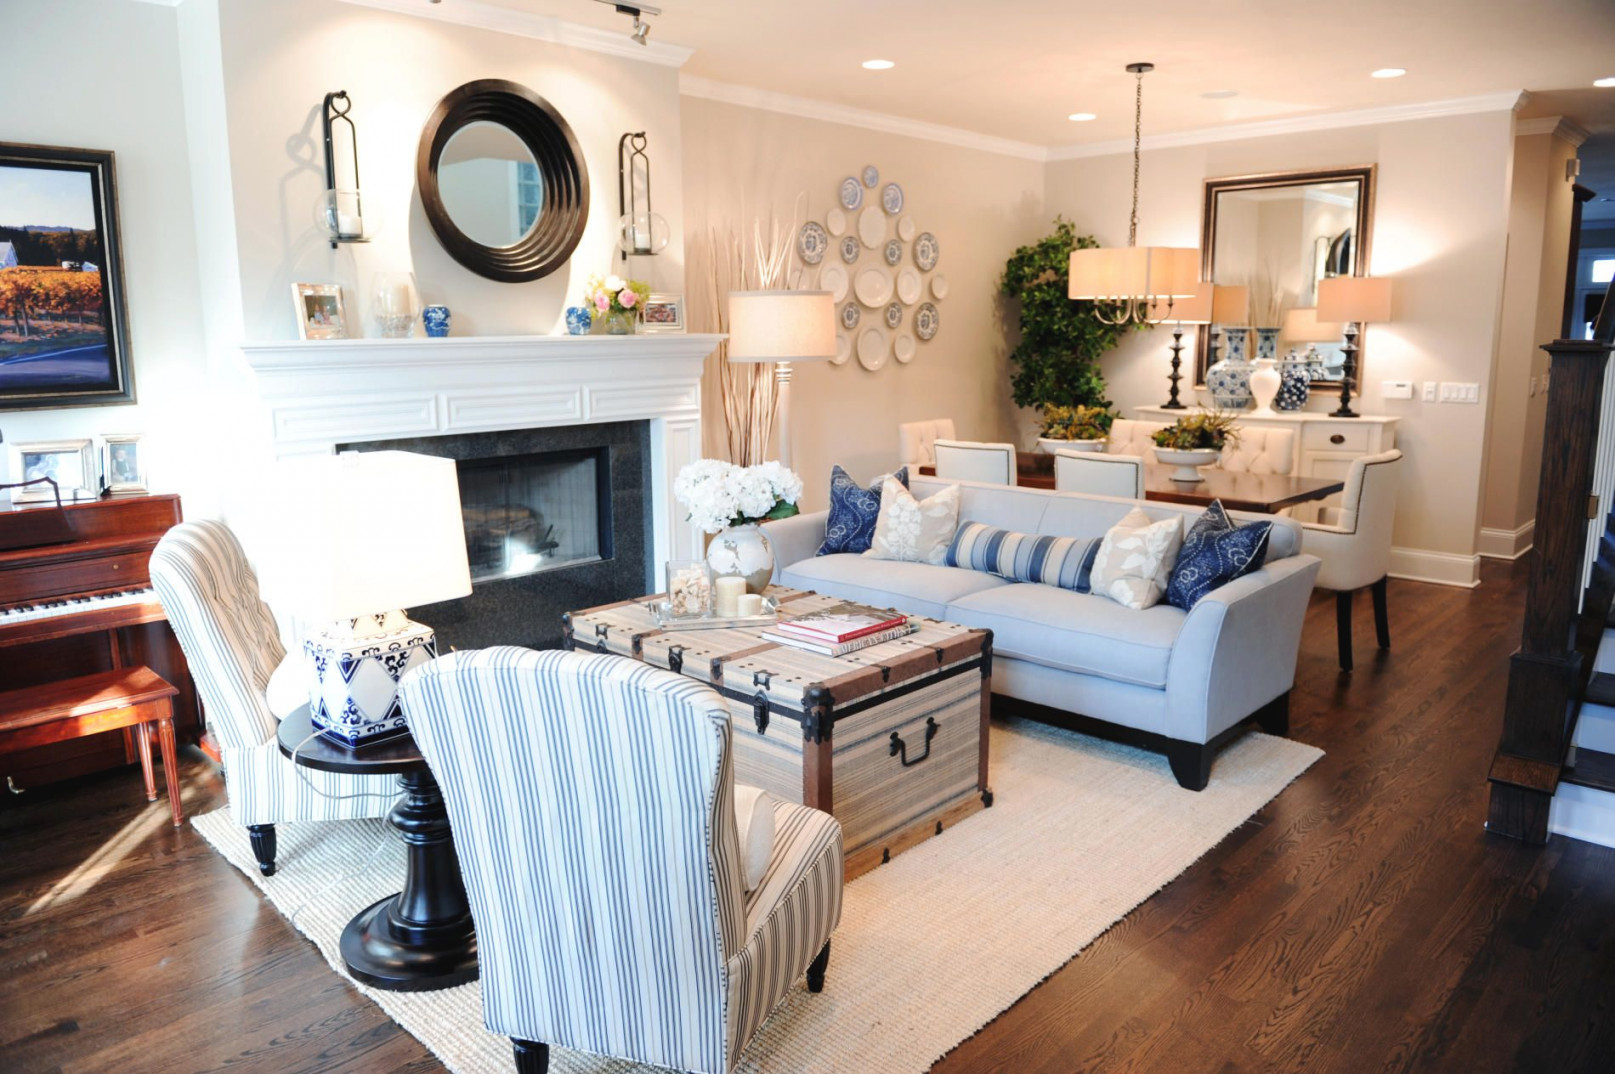 10 Of The Most Common Interior Design Mistakes To Avoid with Living Room Dining Room Combination